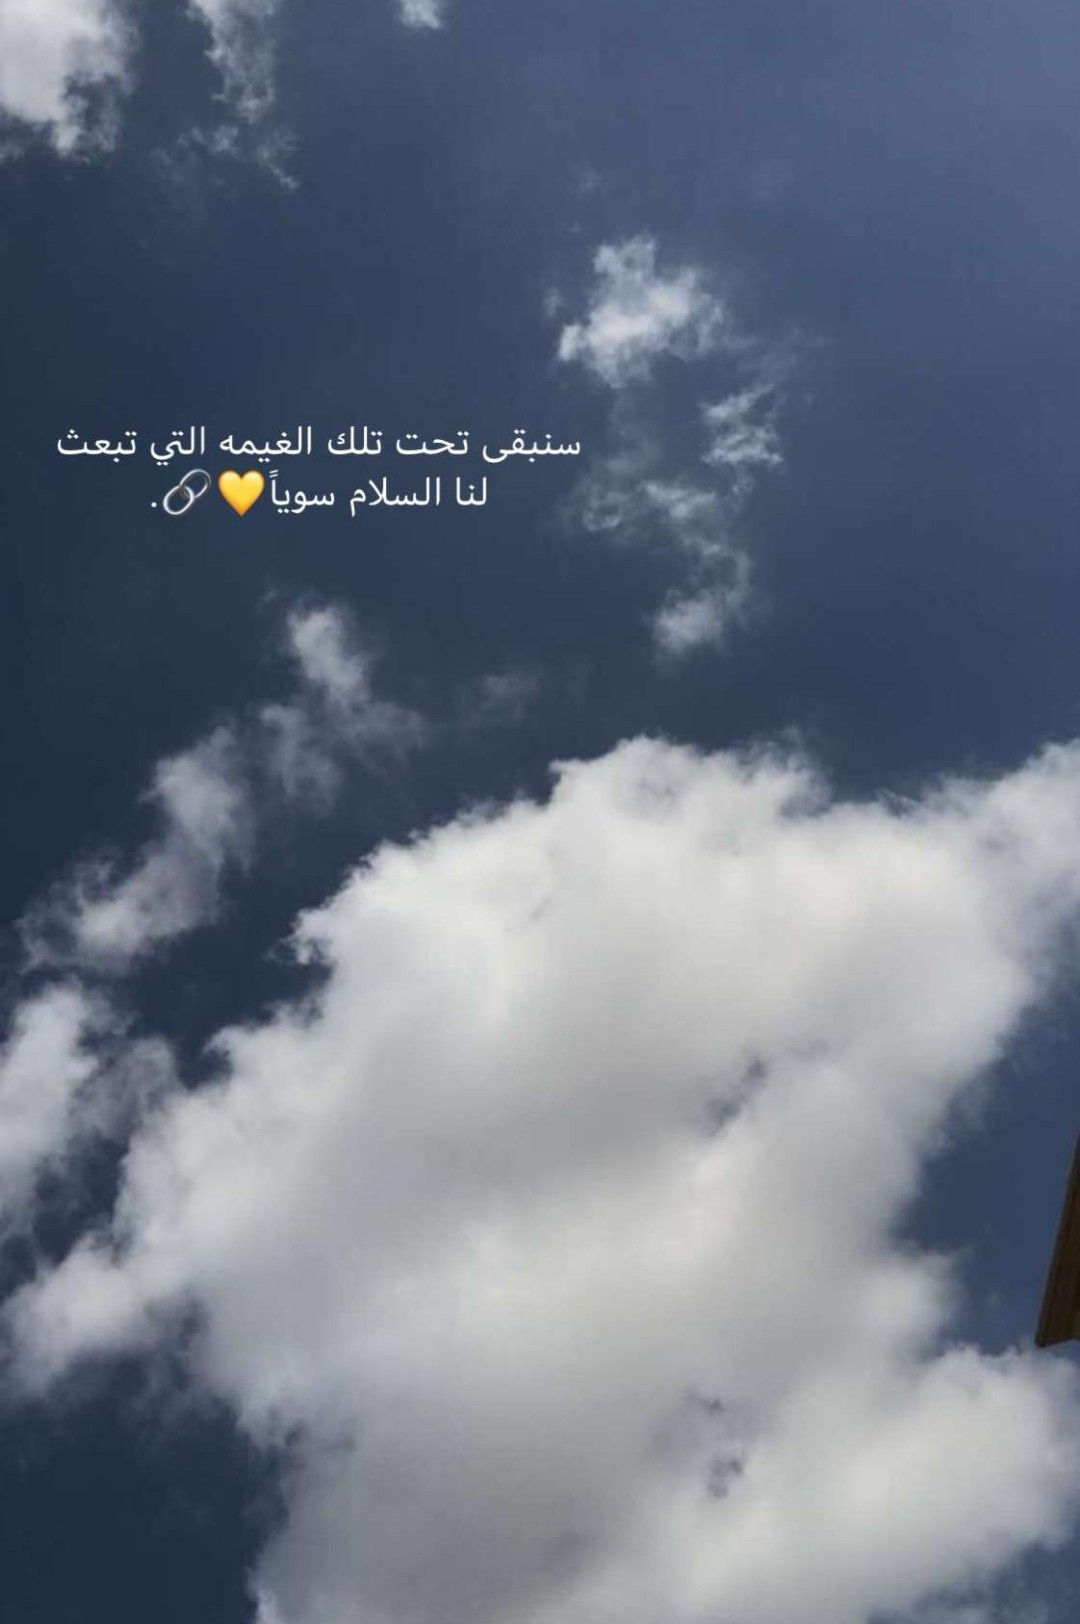 Pin By إشراق الحربي On سنابات Cover Photo Quotes Photo Quotes Beautiful Arabic Words